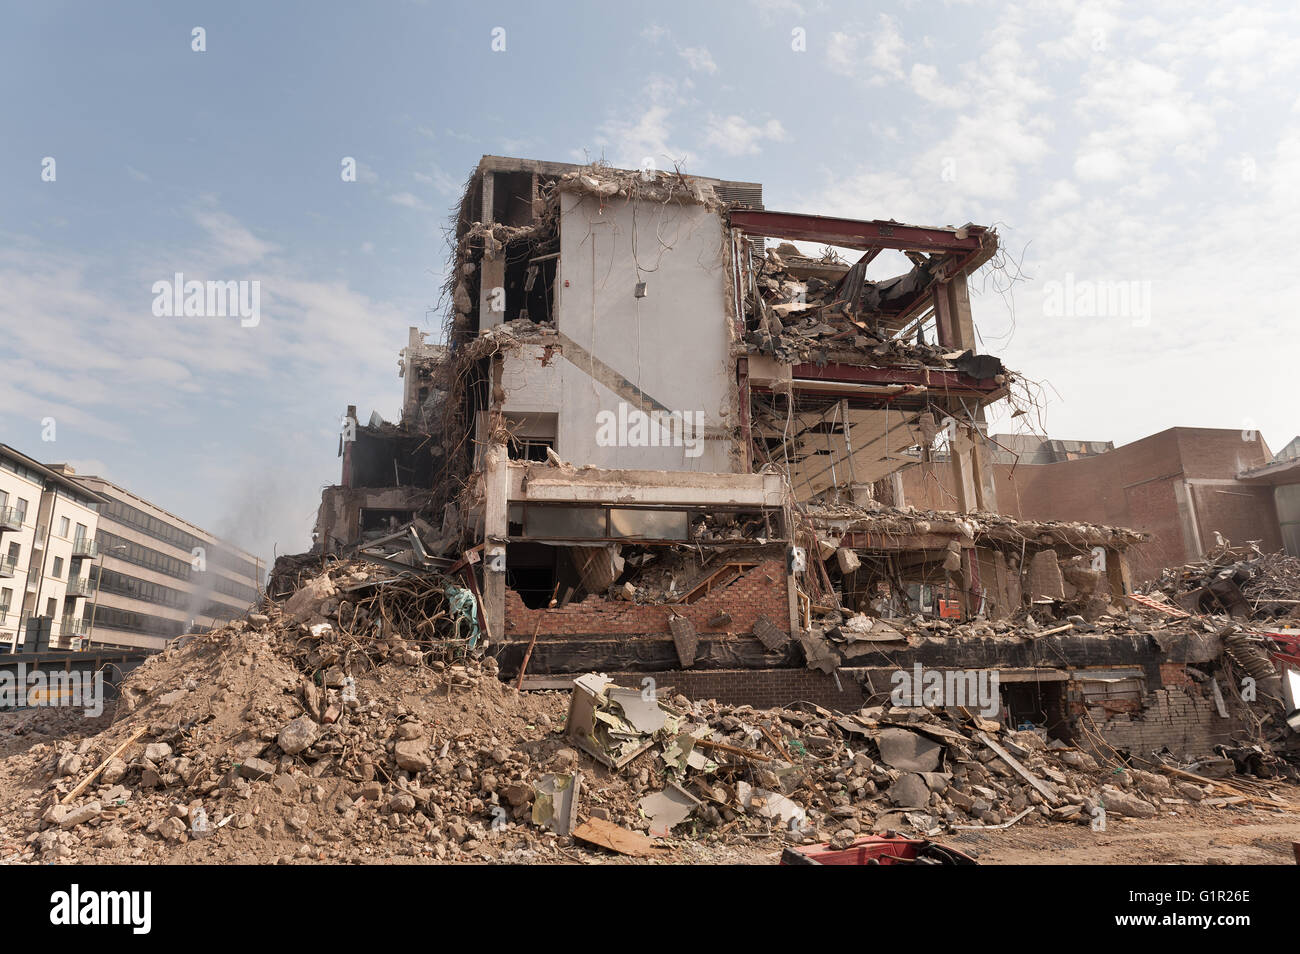 Destruction demolition of westgate shopping center Oxford like a war zone of blown up buildings in city sprayed - Stock Image